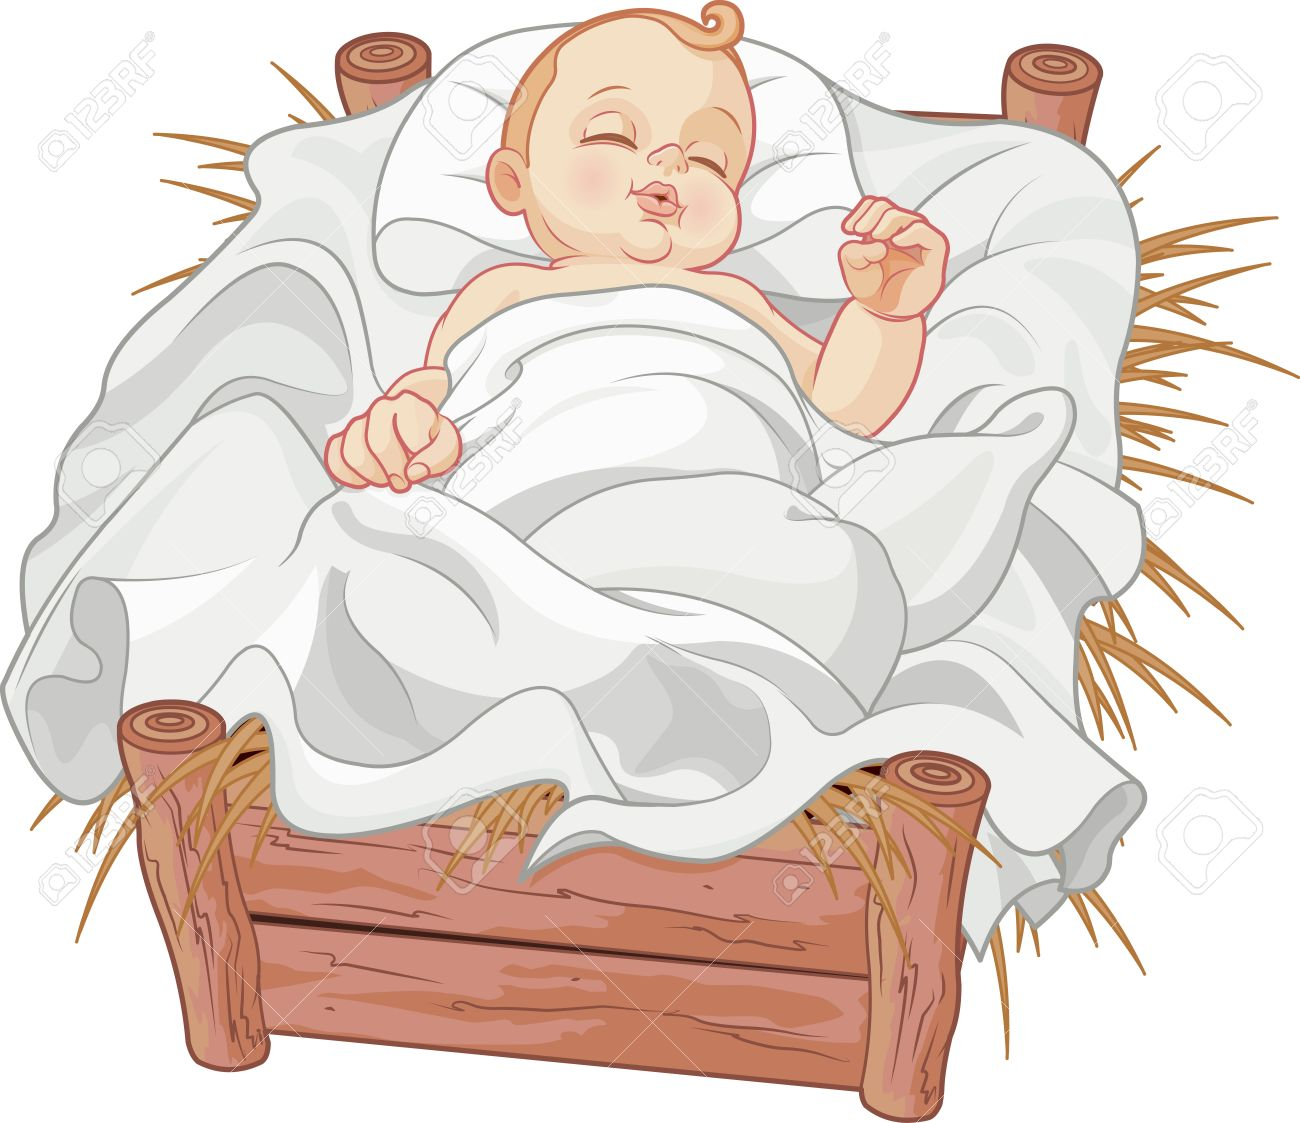 Baby Jesus Asleep In A Christmas Nativity Crib Royalty Free Cliparts